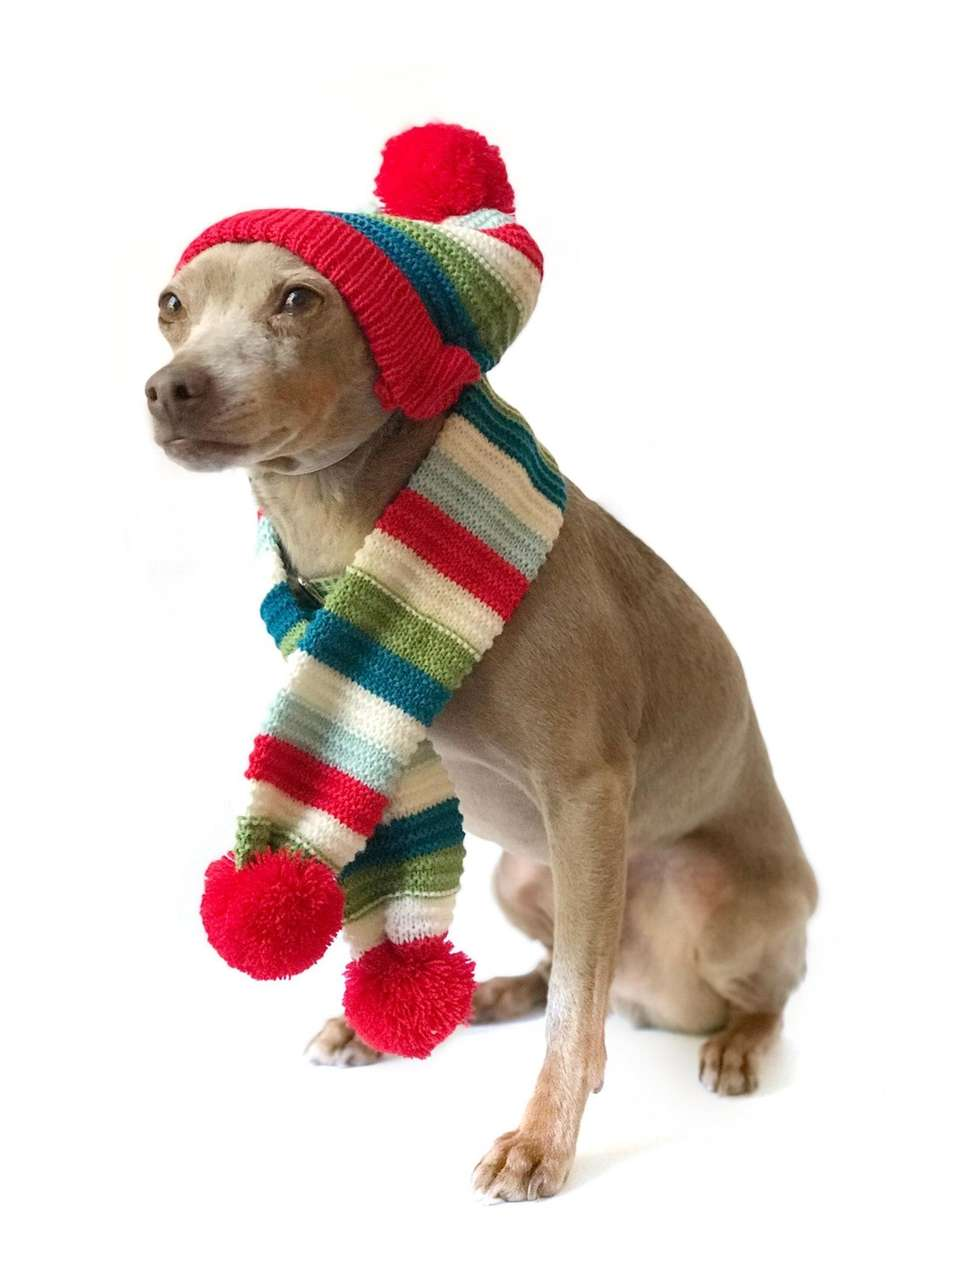 This knit hat will keep pets warm in